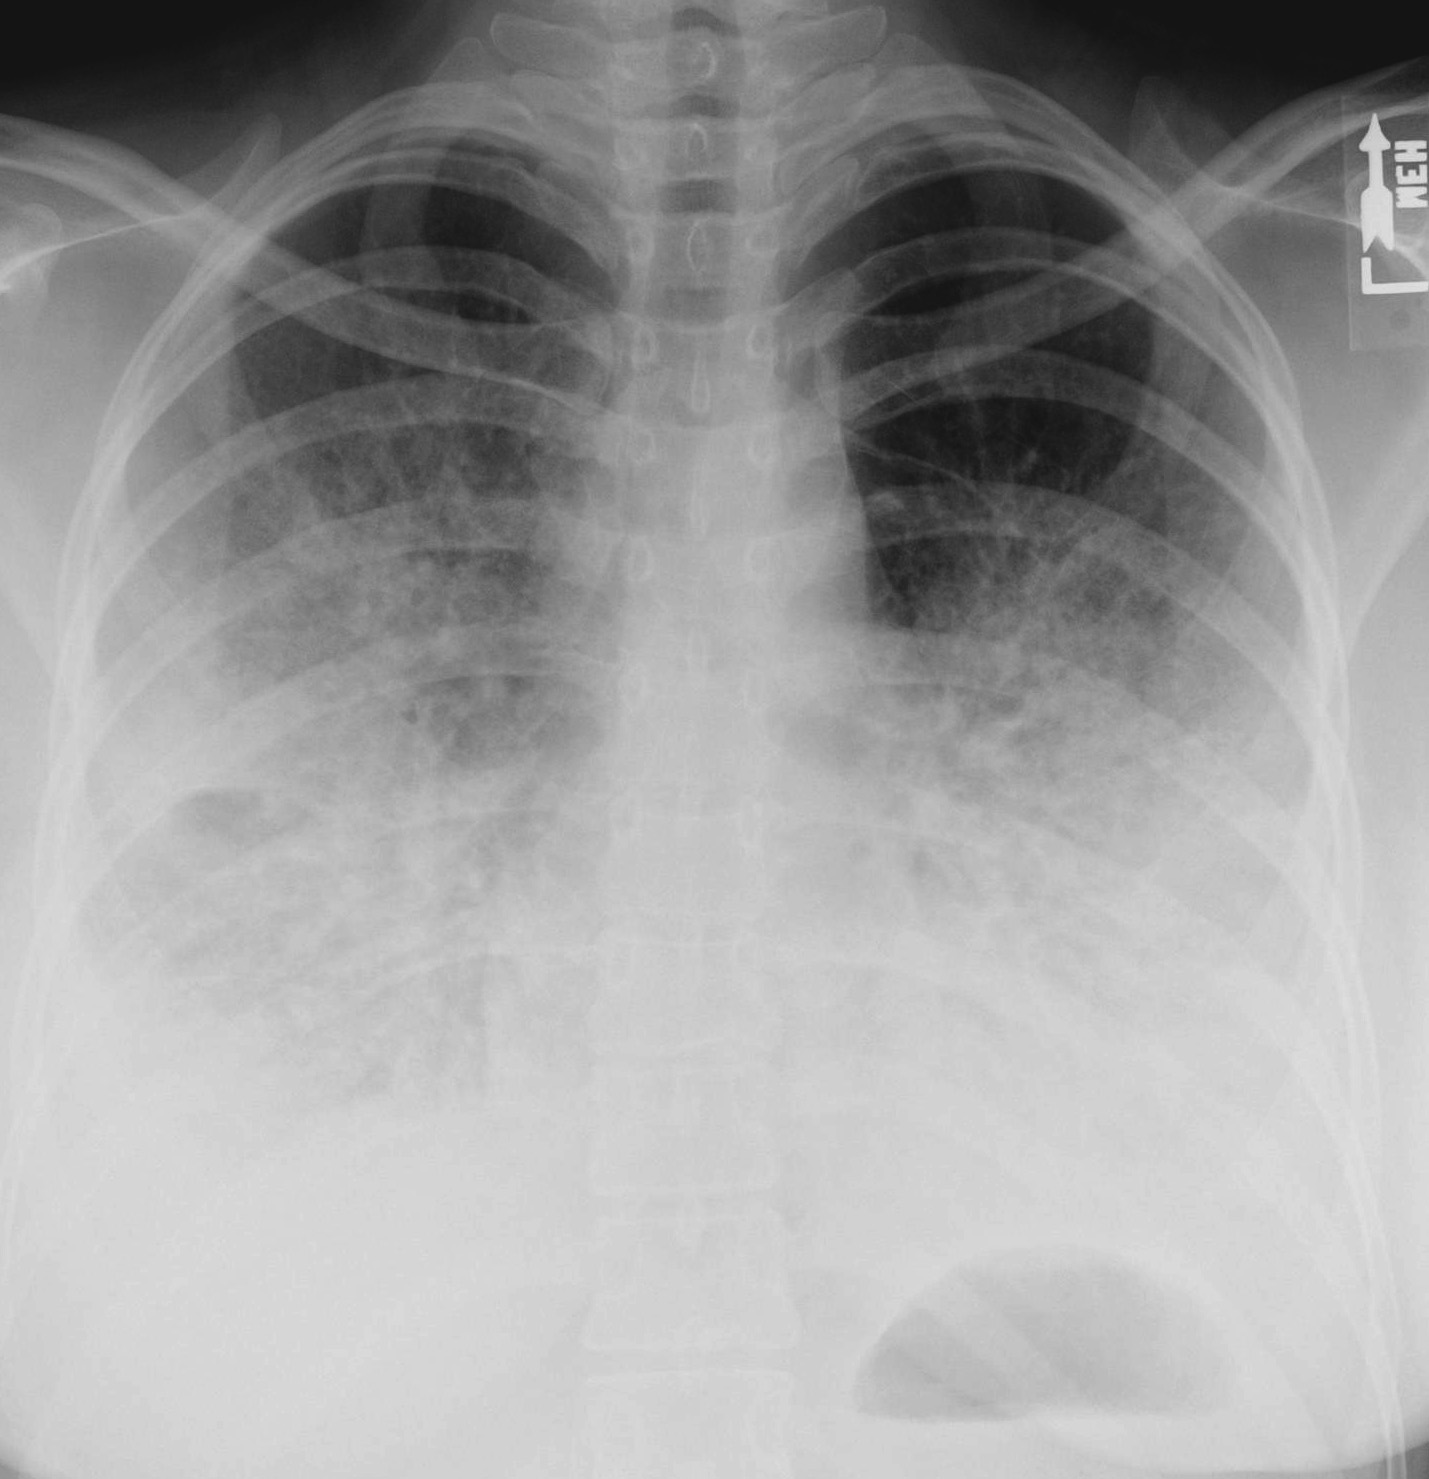 Bilateral pneumonia: symptoms, causes, treatment. Bilateral pneumonia in children 36